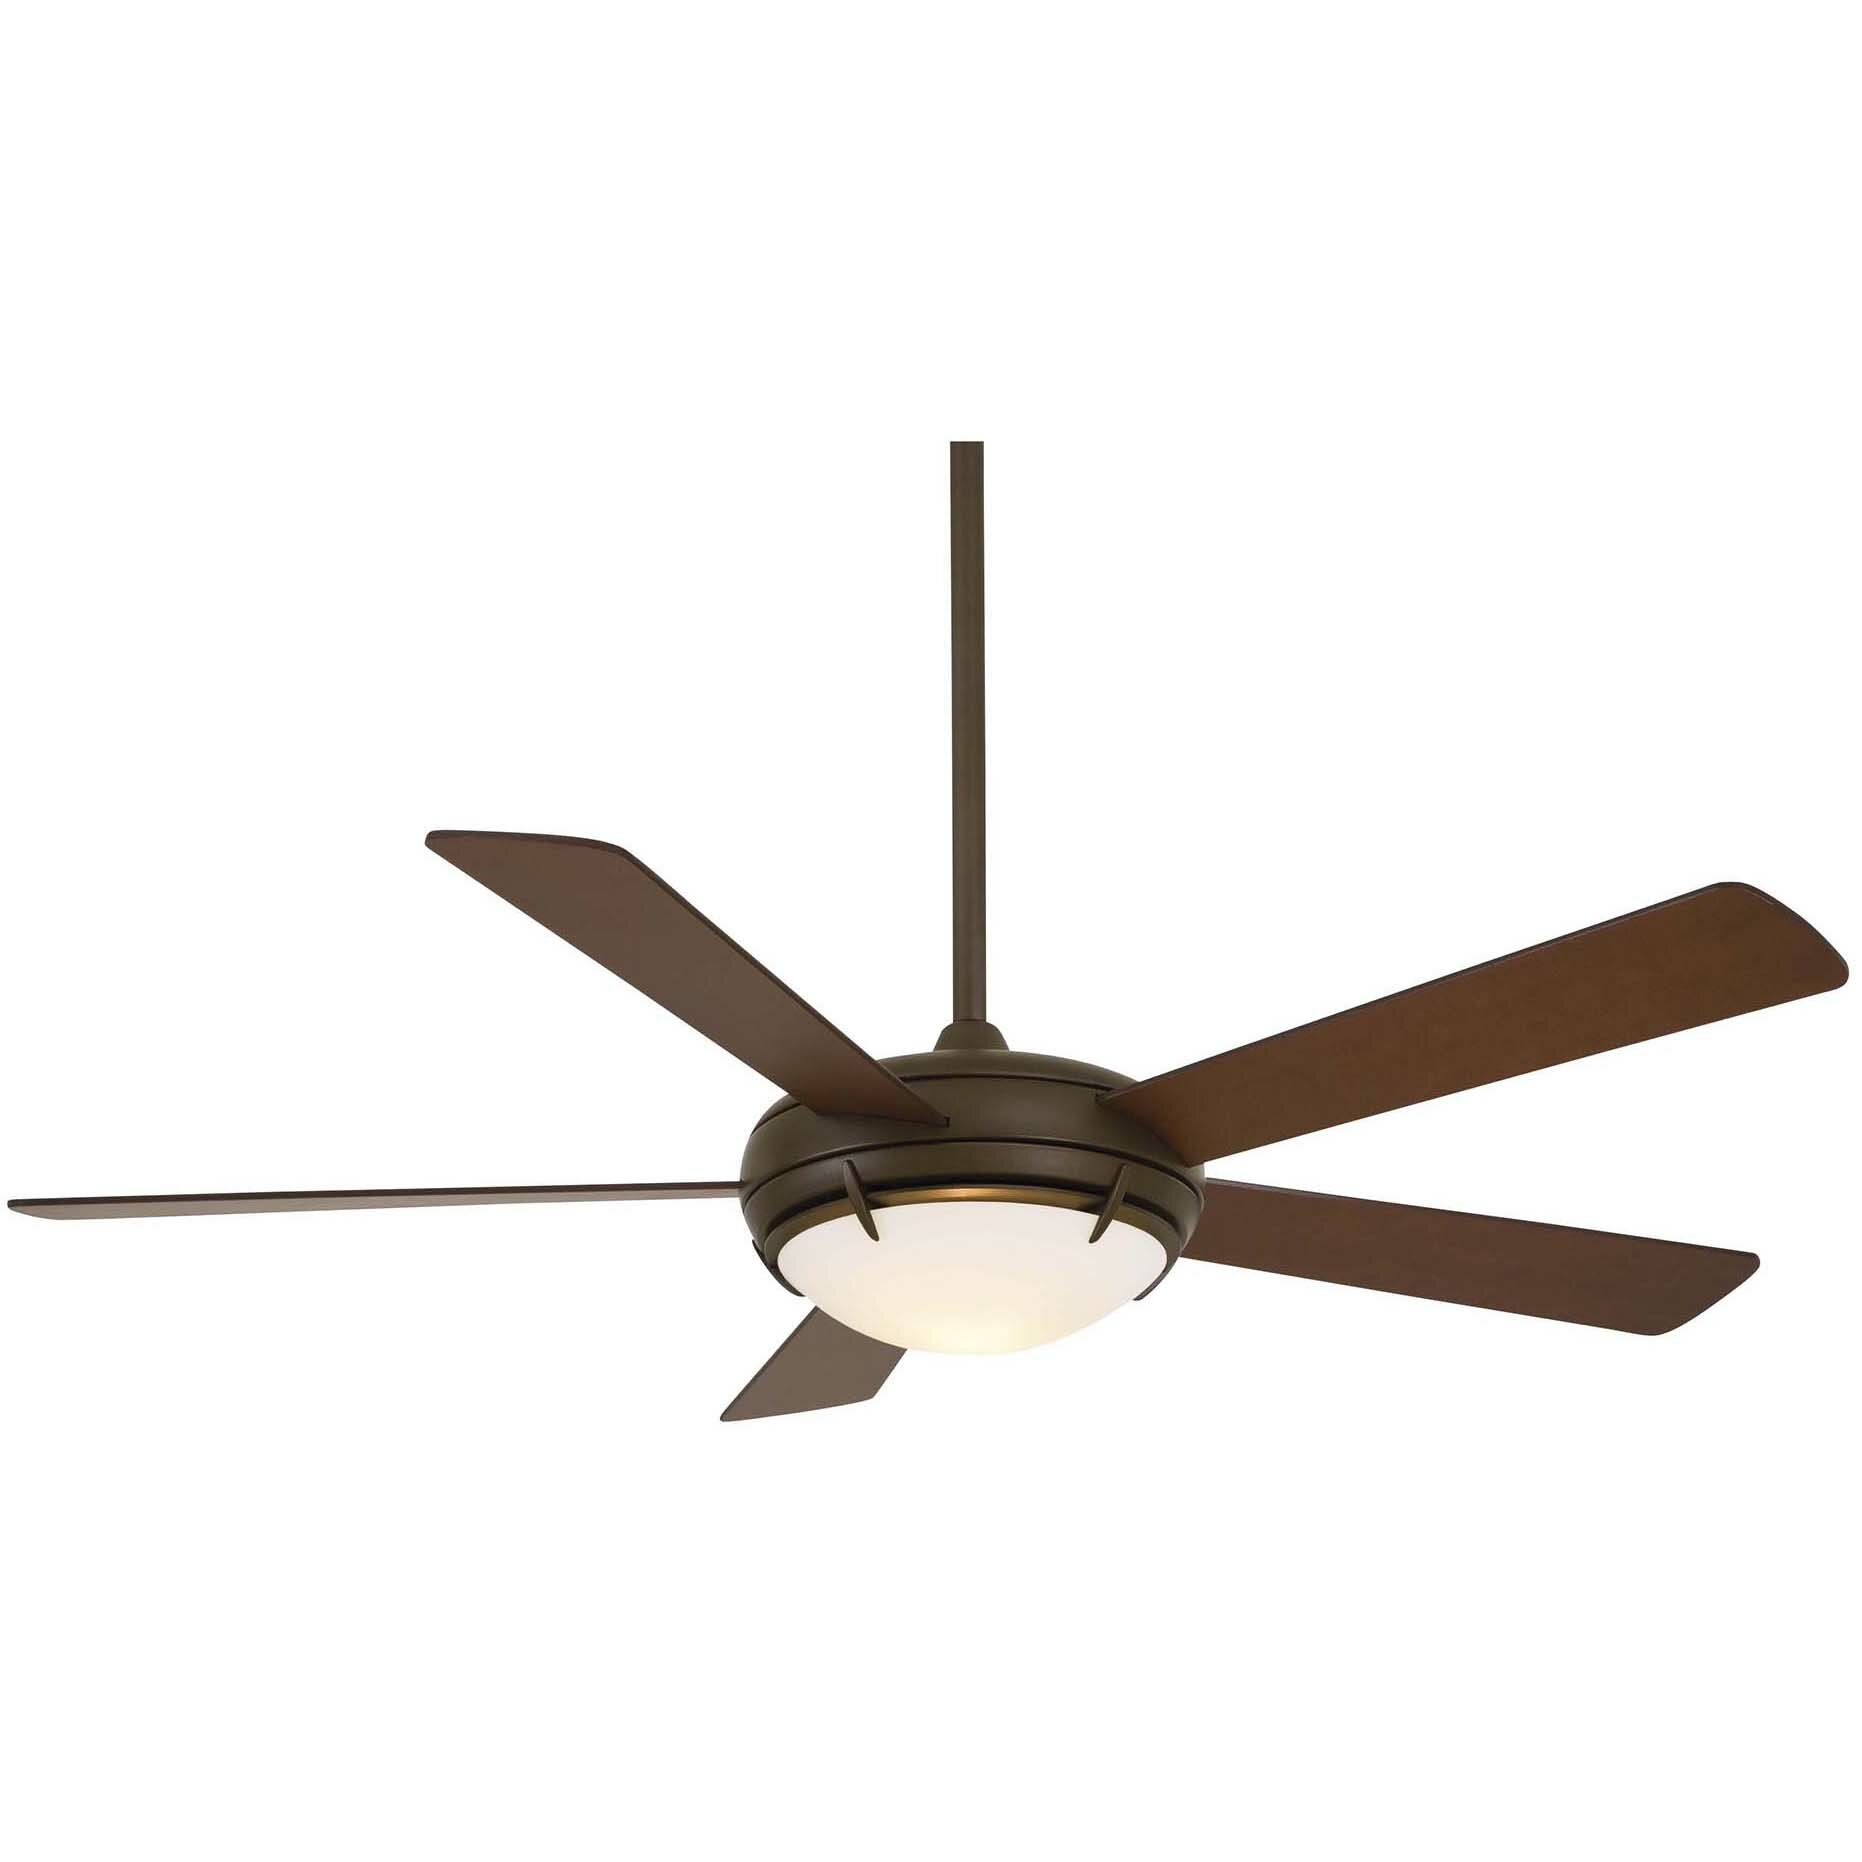 Minka Aire 54 Como 5 Blade Contemporary Ceiling Fan With Remote Wiring A Light Separately From 2 Locations In The Same Reviews Wayfair